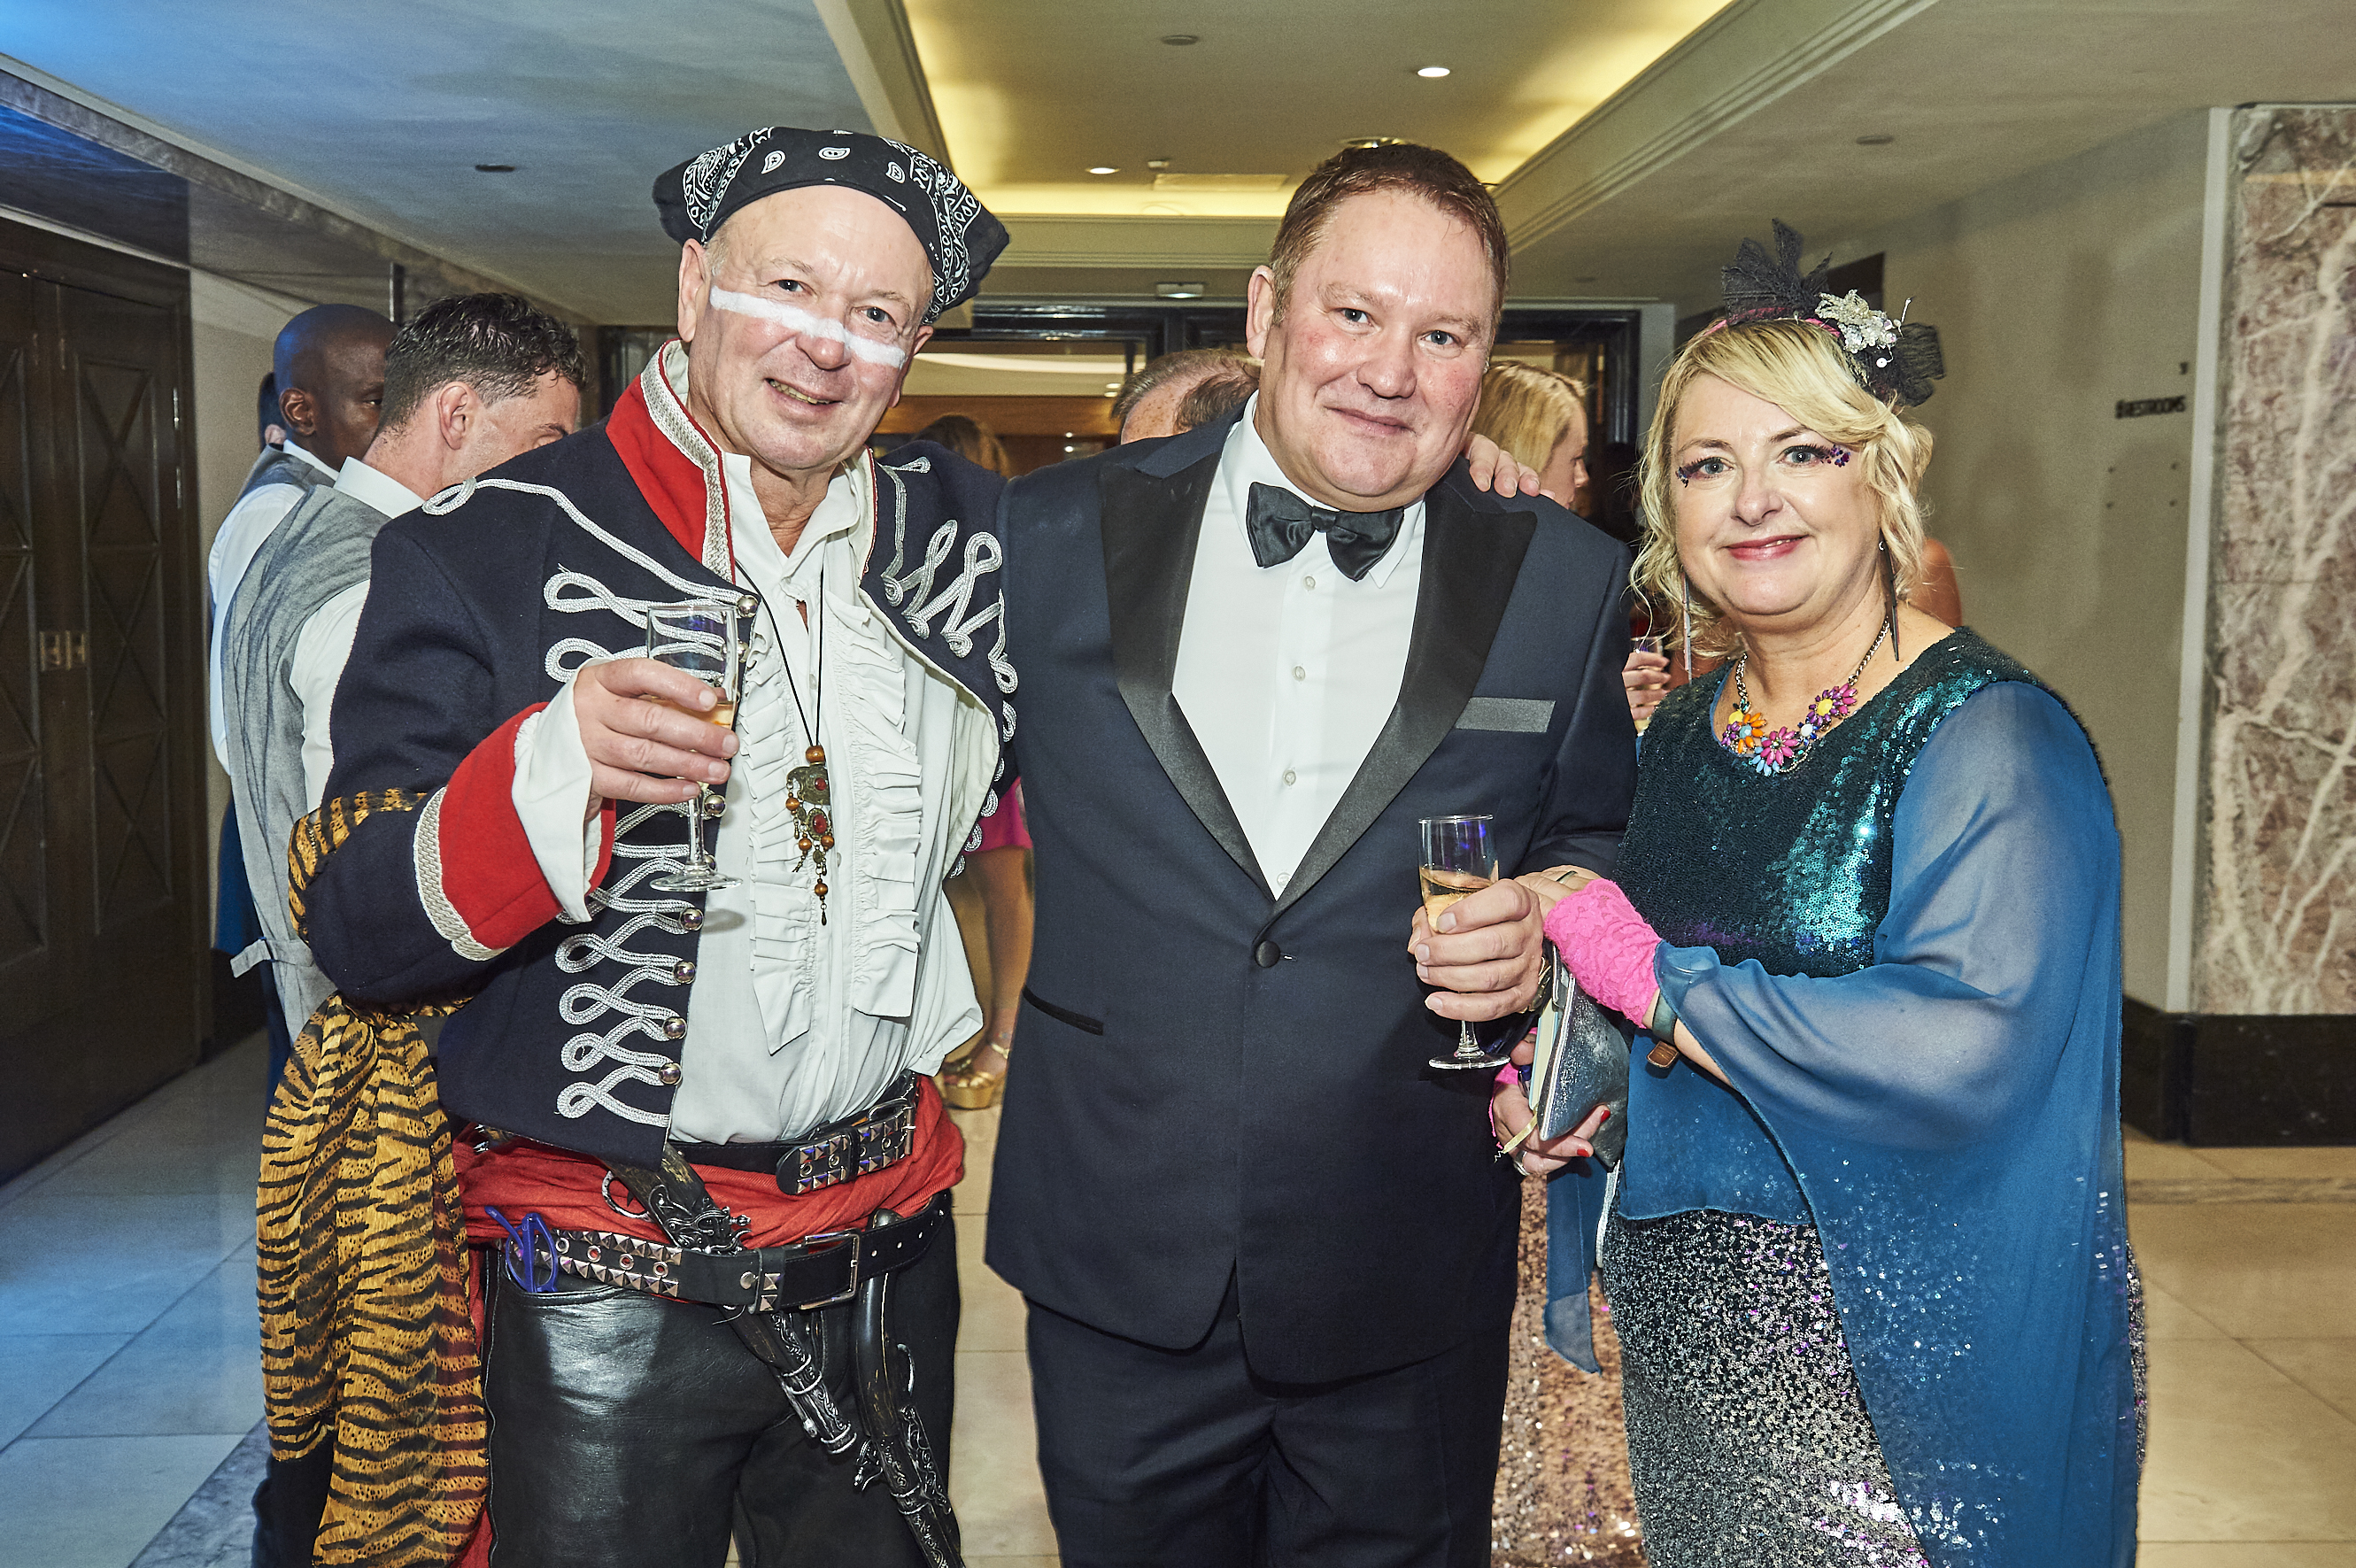 Above: Card Factory's creative director and major shareholder, Stuart Middleton (centre) with PG's Jakki Brown and Warren Lomax who was 'adamant' about being dressed for the theme.